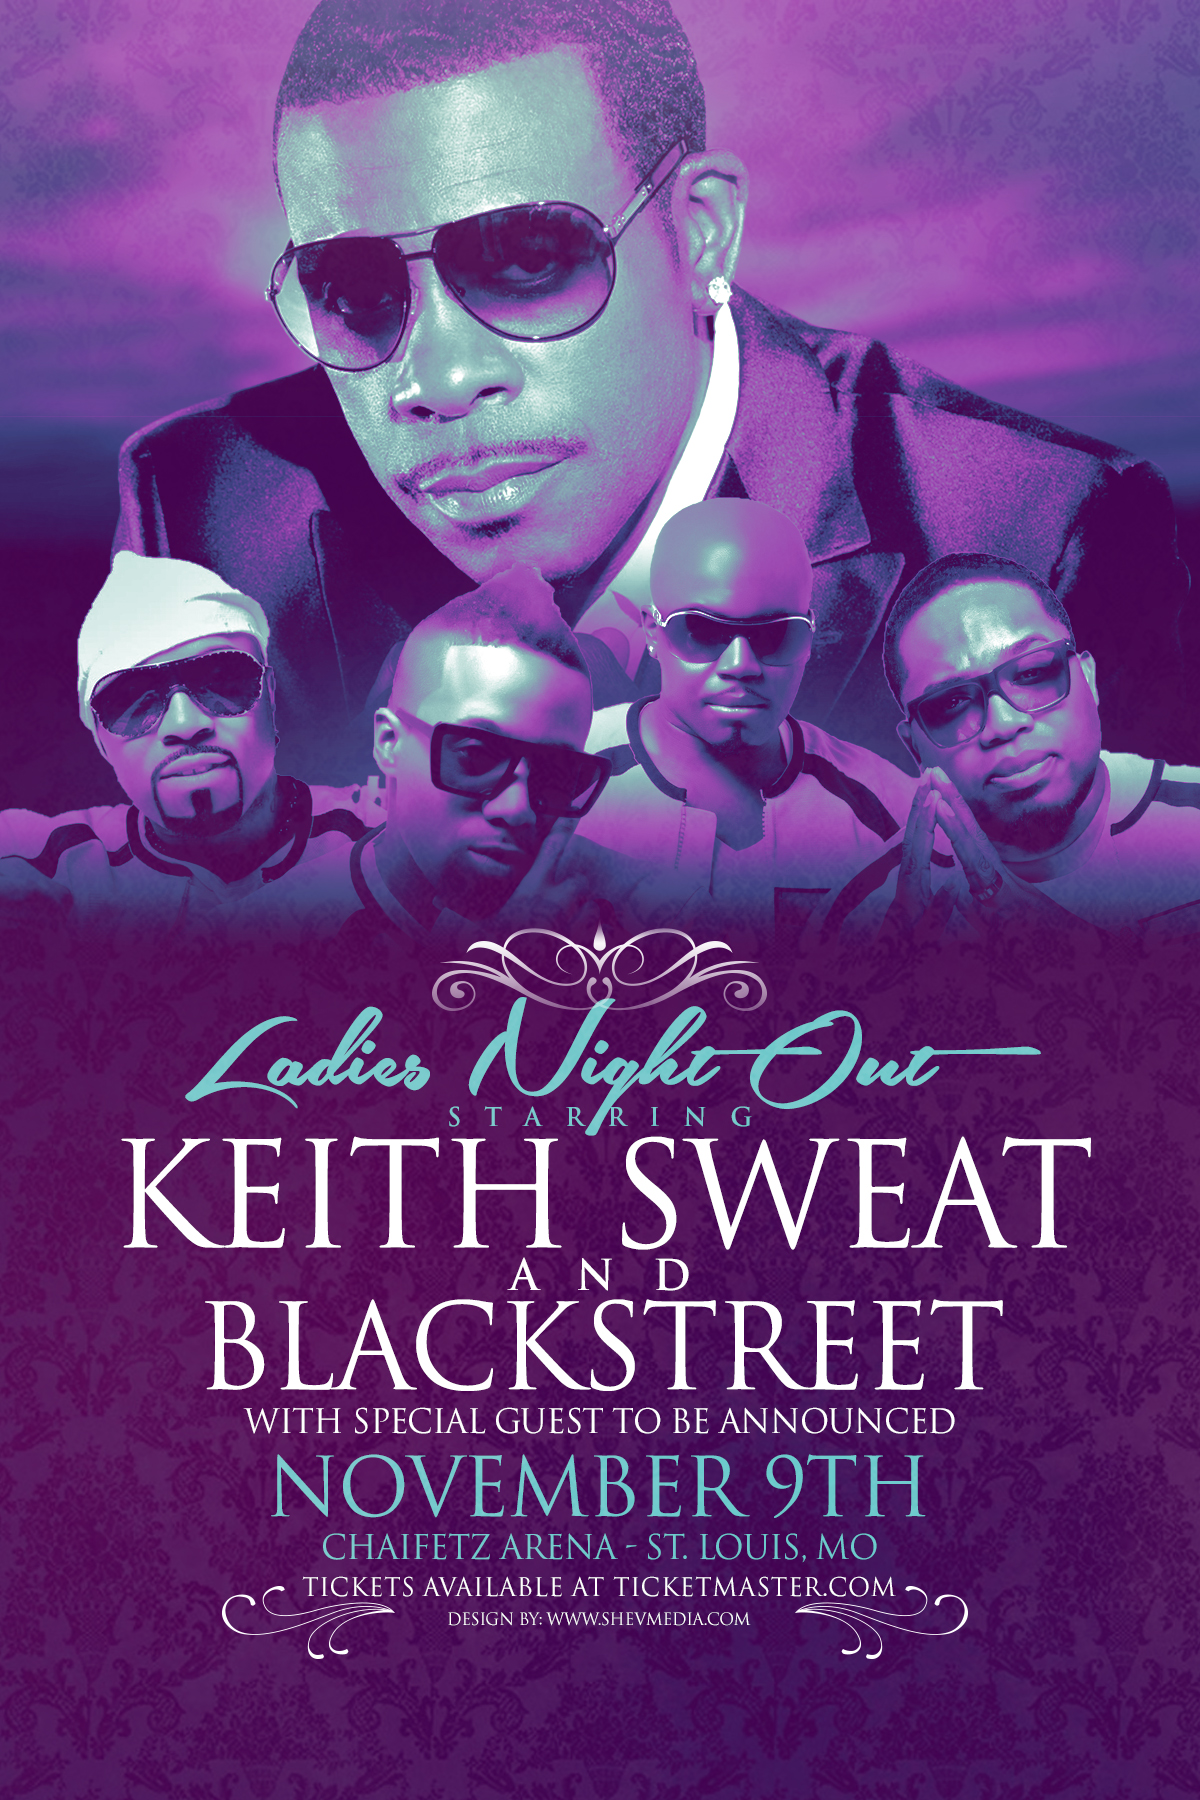 Ladies Night Out with Keith Sweat and Blackstreet